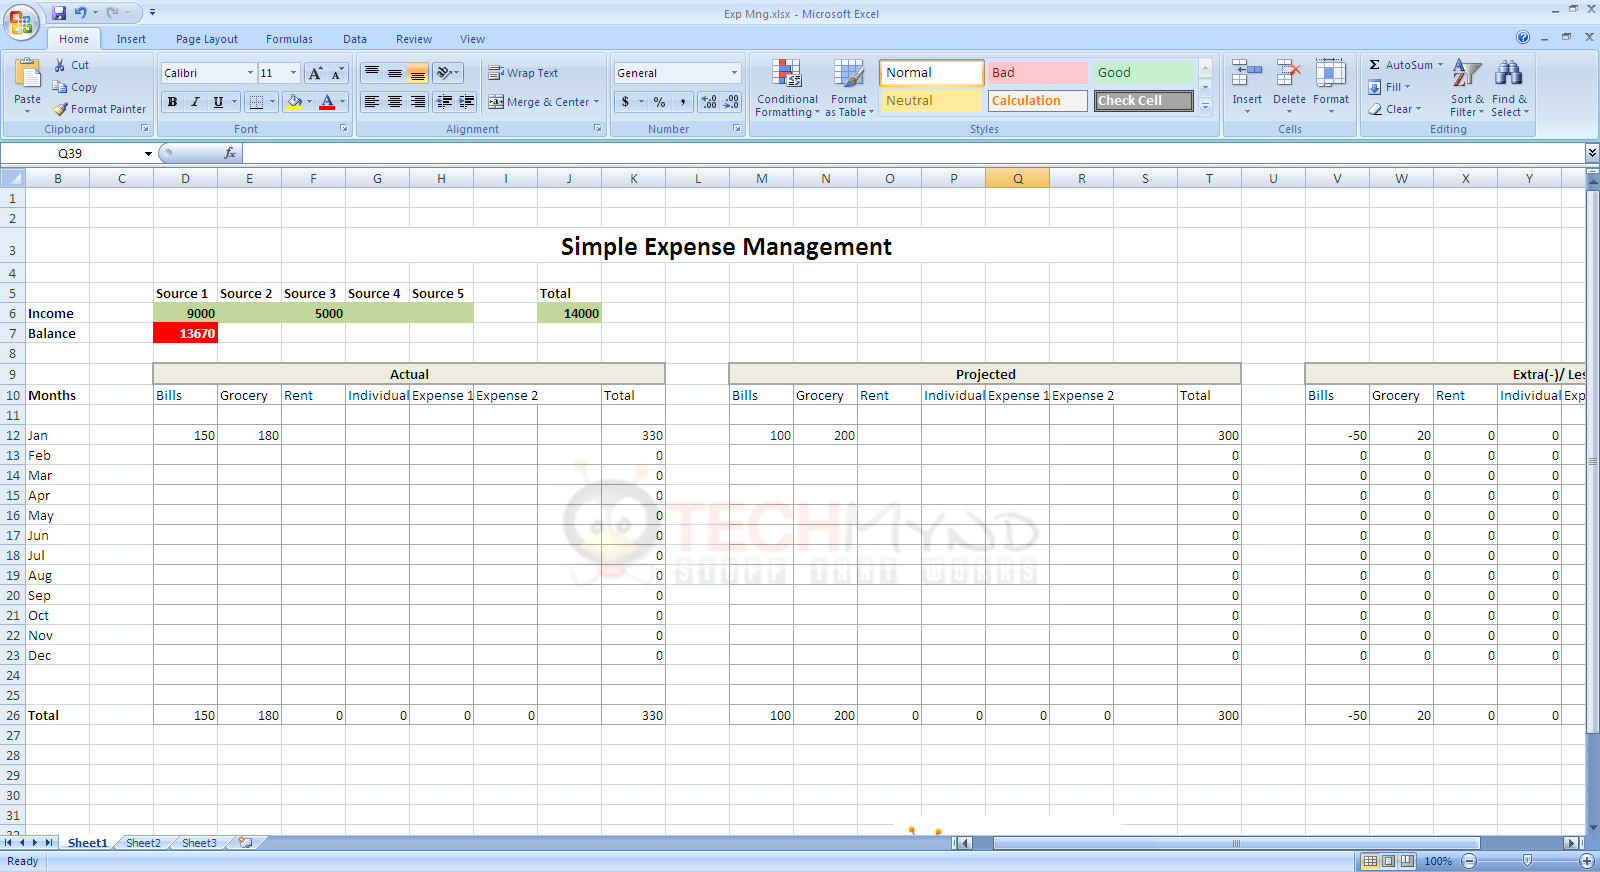 How To Start An Excel Spreadsheet With Expense Management Using Simple Excel Sheet  Freebies  Techmynd